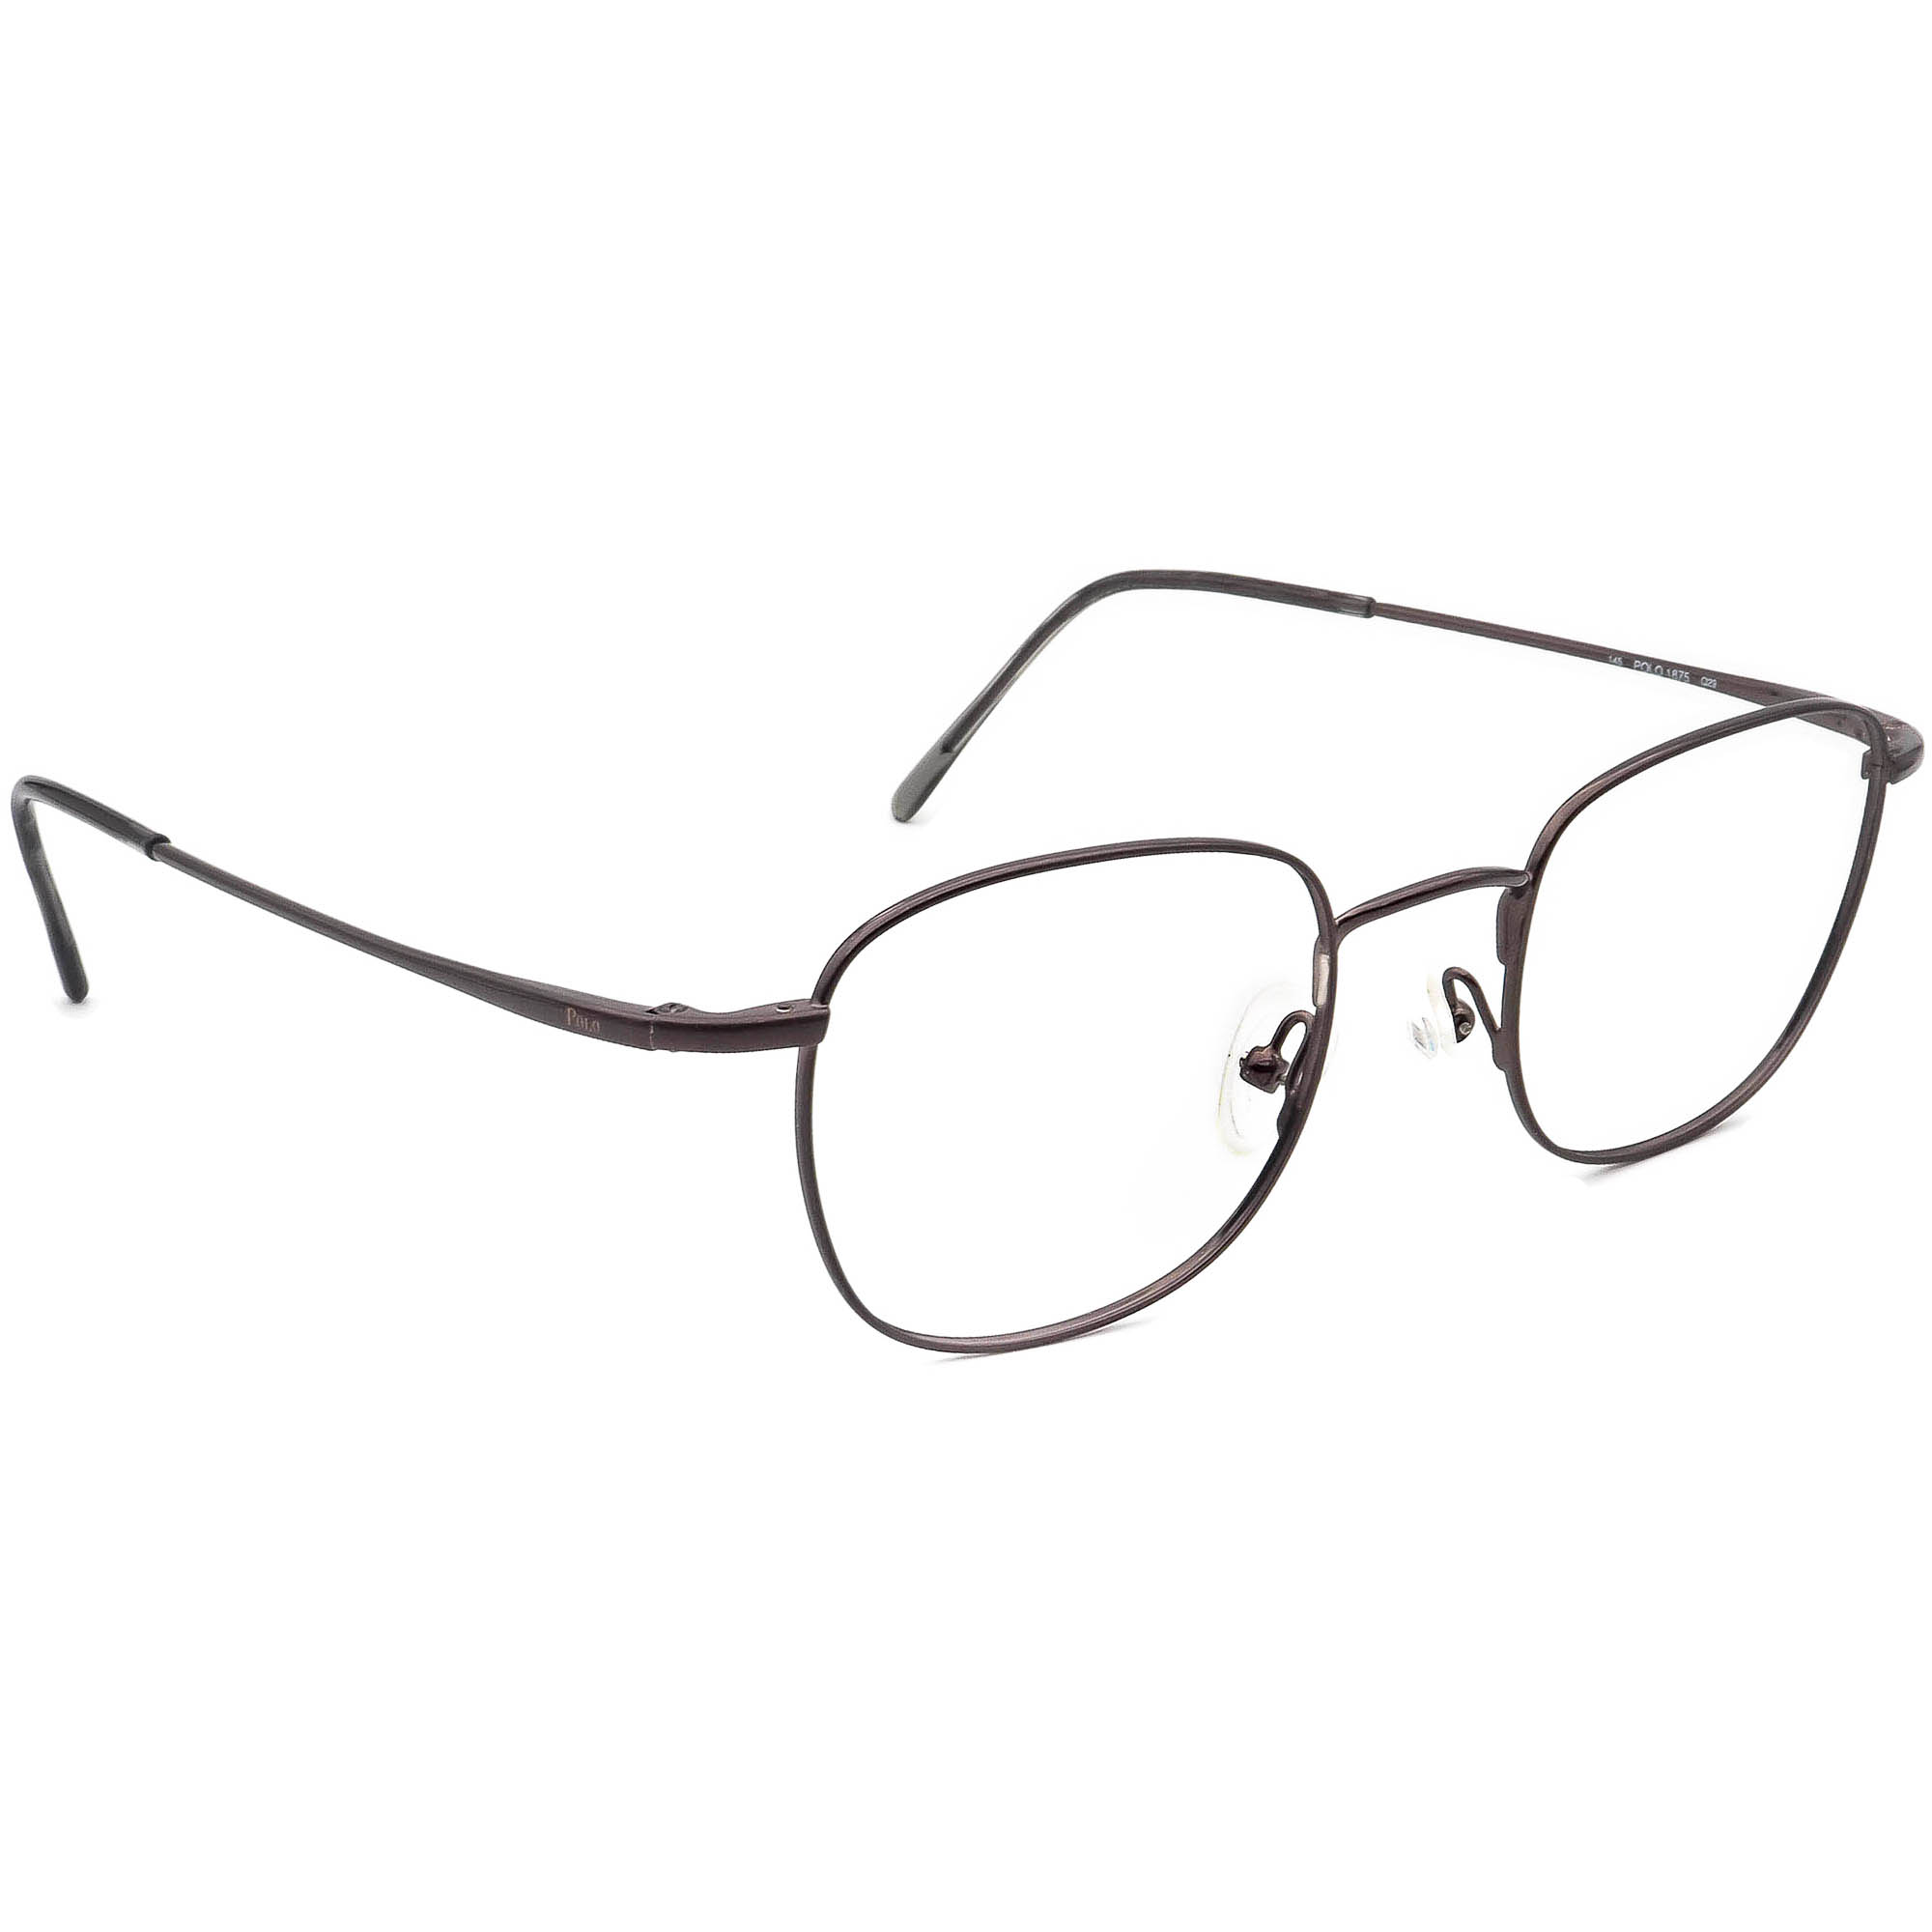 Ralph Lauren Polo 1875 Q29 Eyeglasses